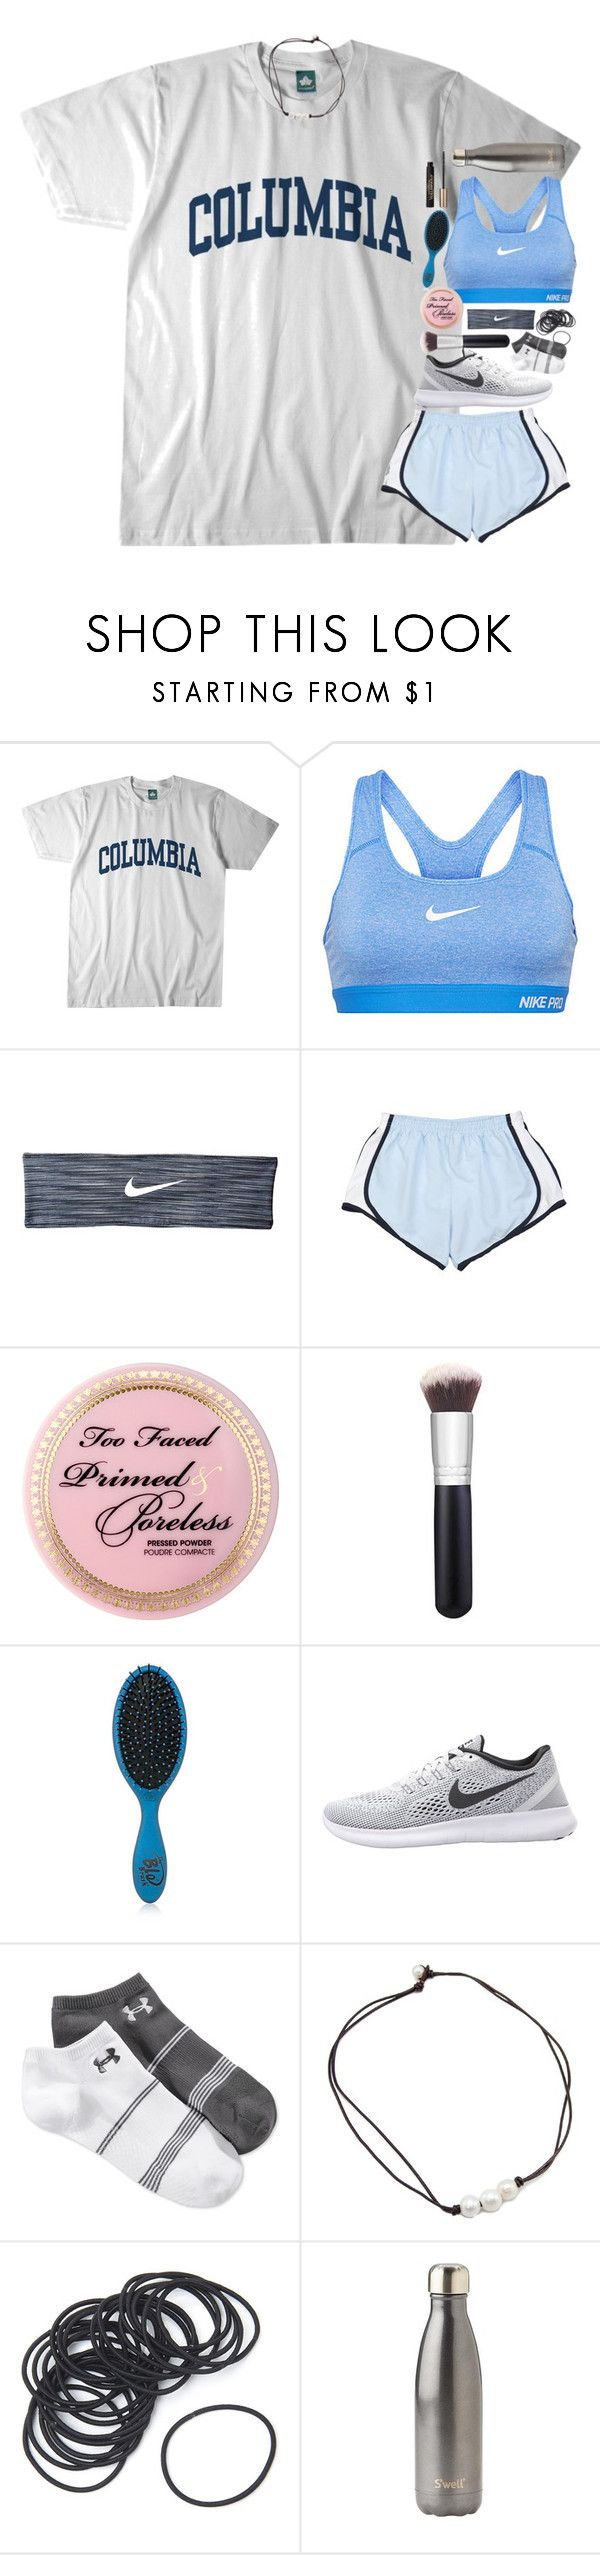 nike shoes day 3// athletics!! by sdyerrtx ❤ liked on Polyvore featuring Columbia, NIKE, Too Faced Cosmetics, Morphe, The Wet Brush, Under Armour, Swell, LOréal Paris and katesbtsb2k16